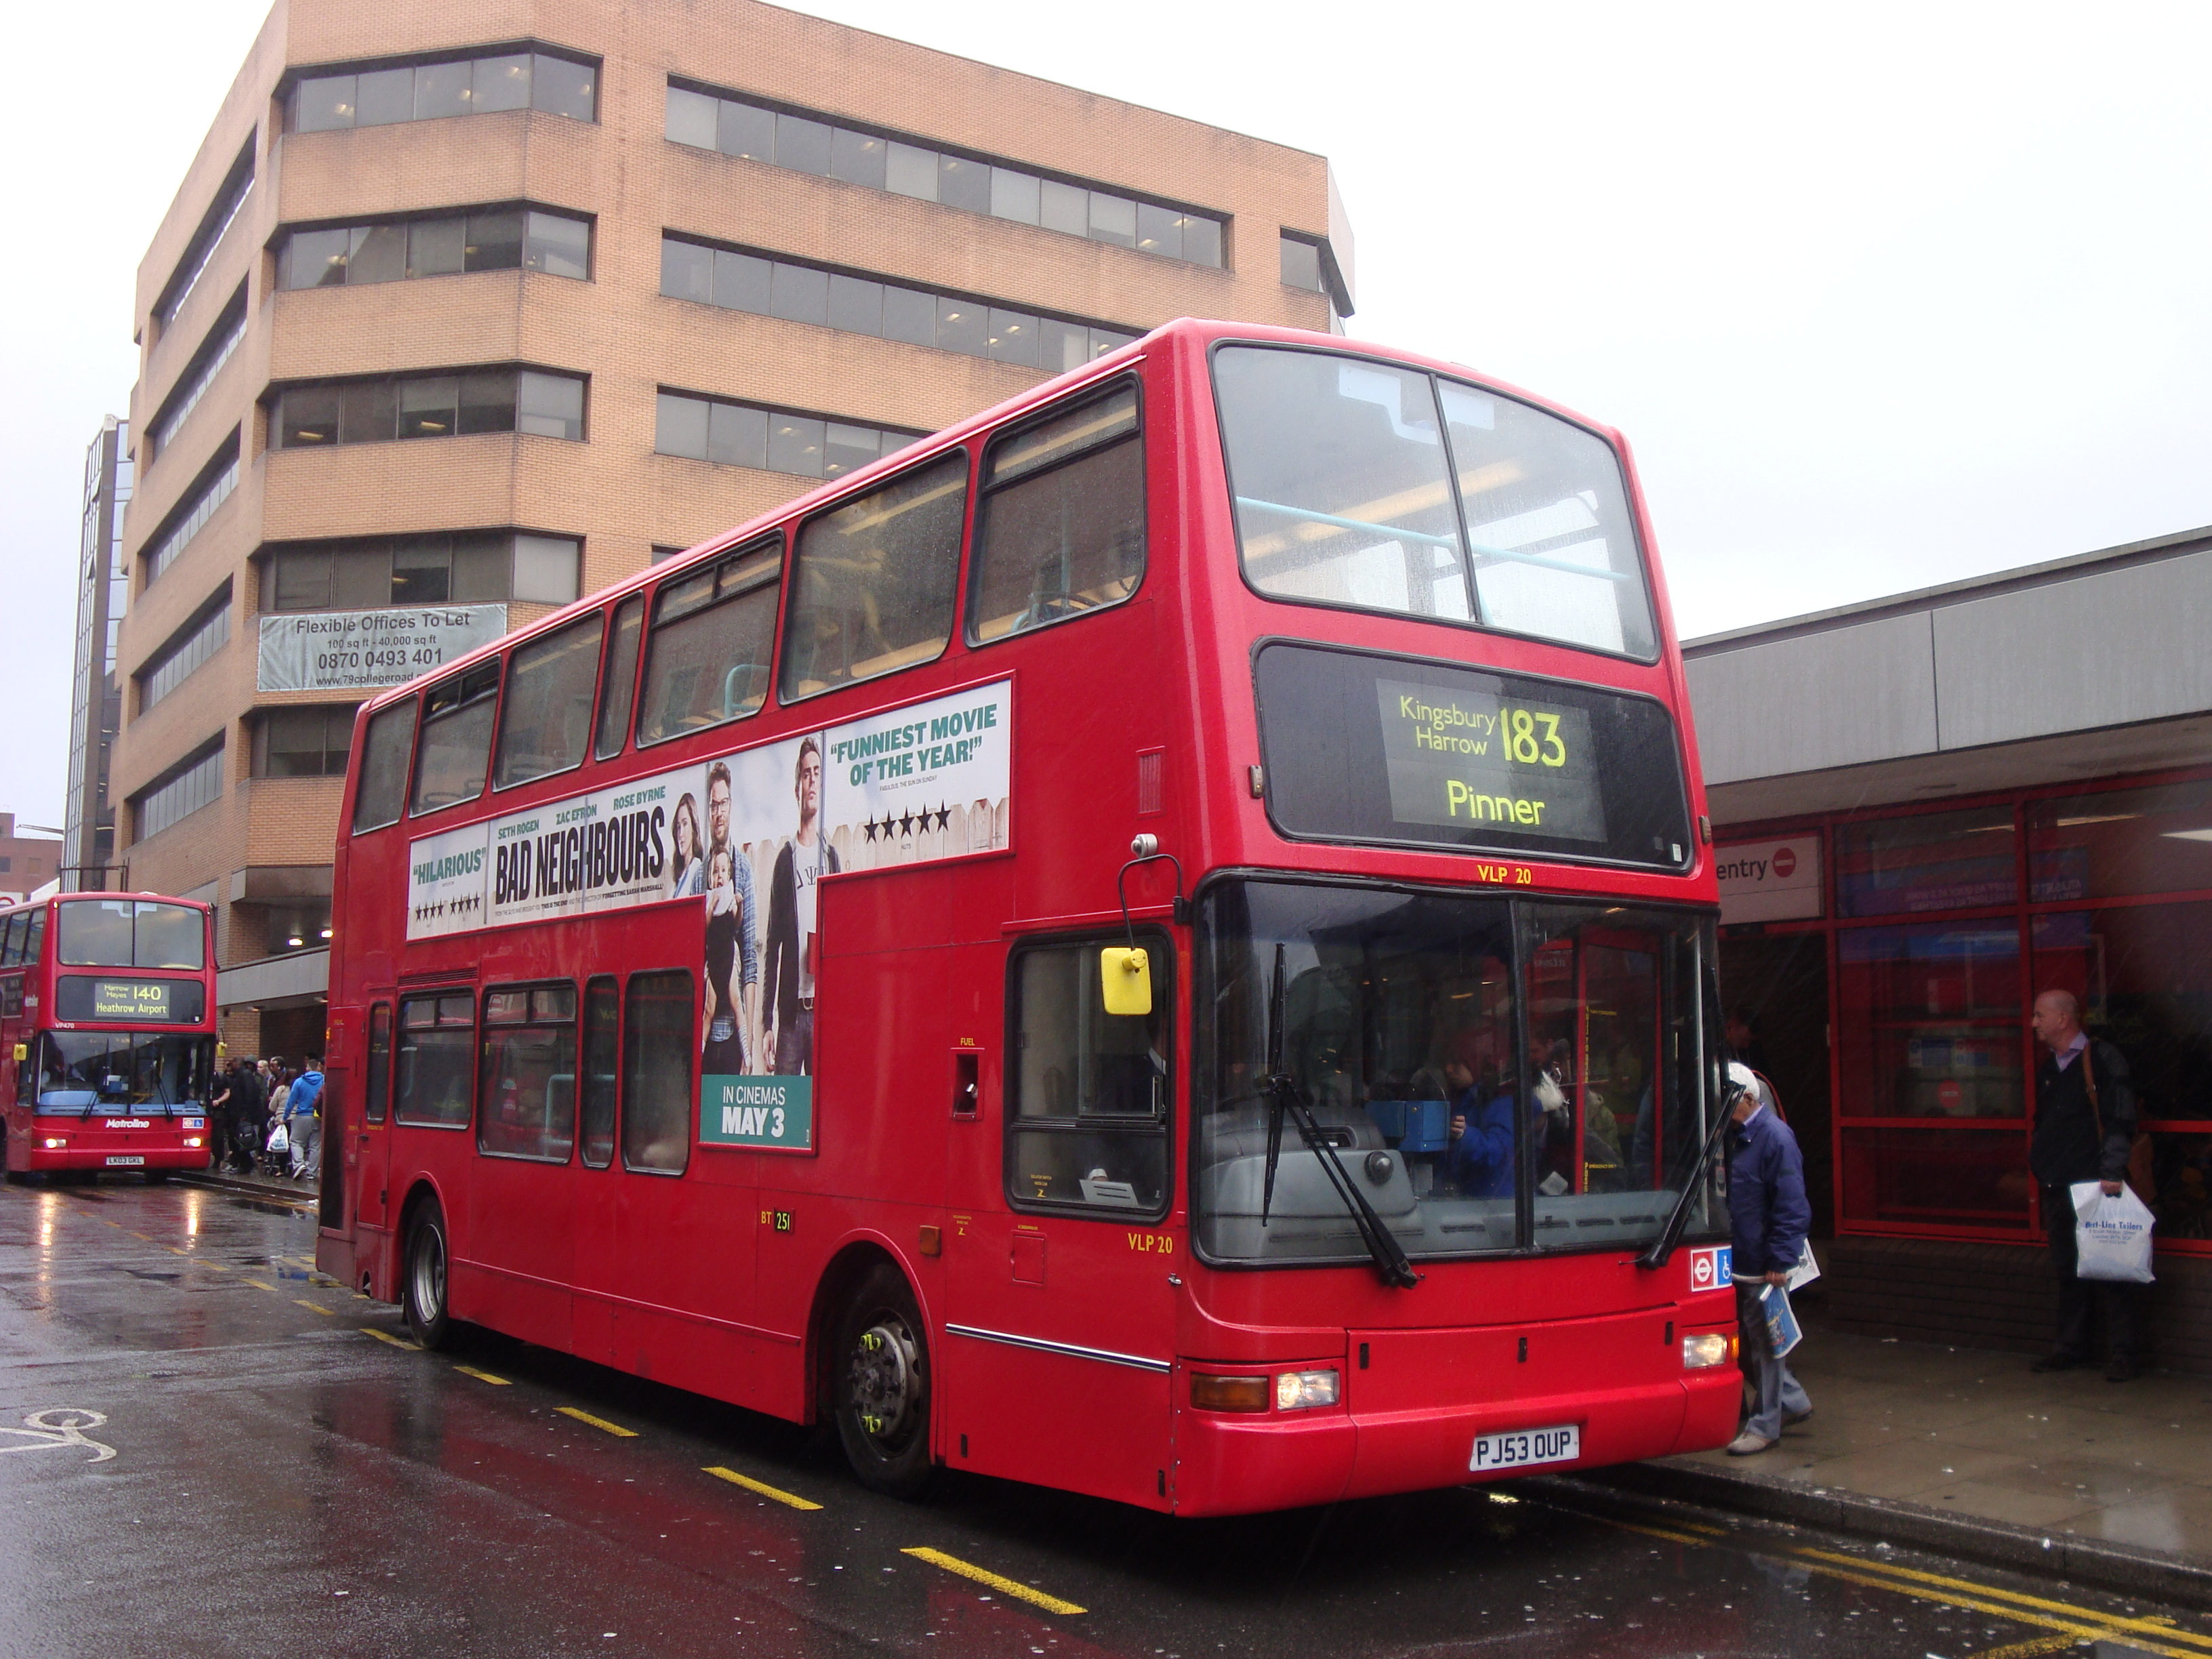 File:London Sovereign VLP20 on Route 183, Harrow Bus Station